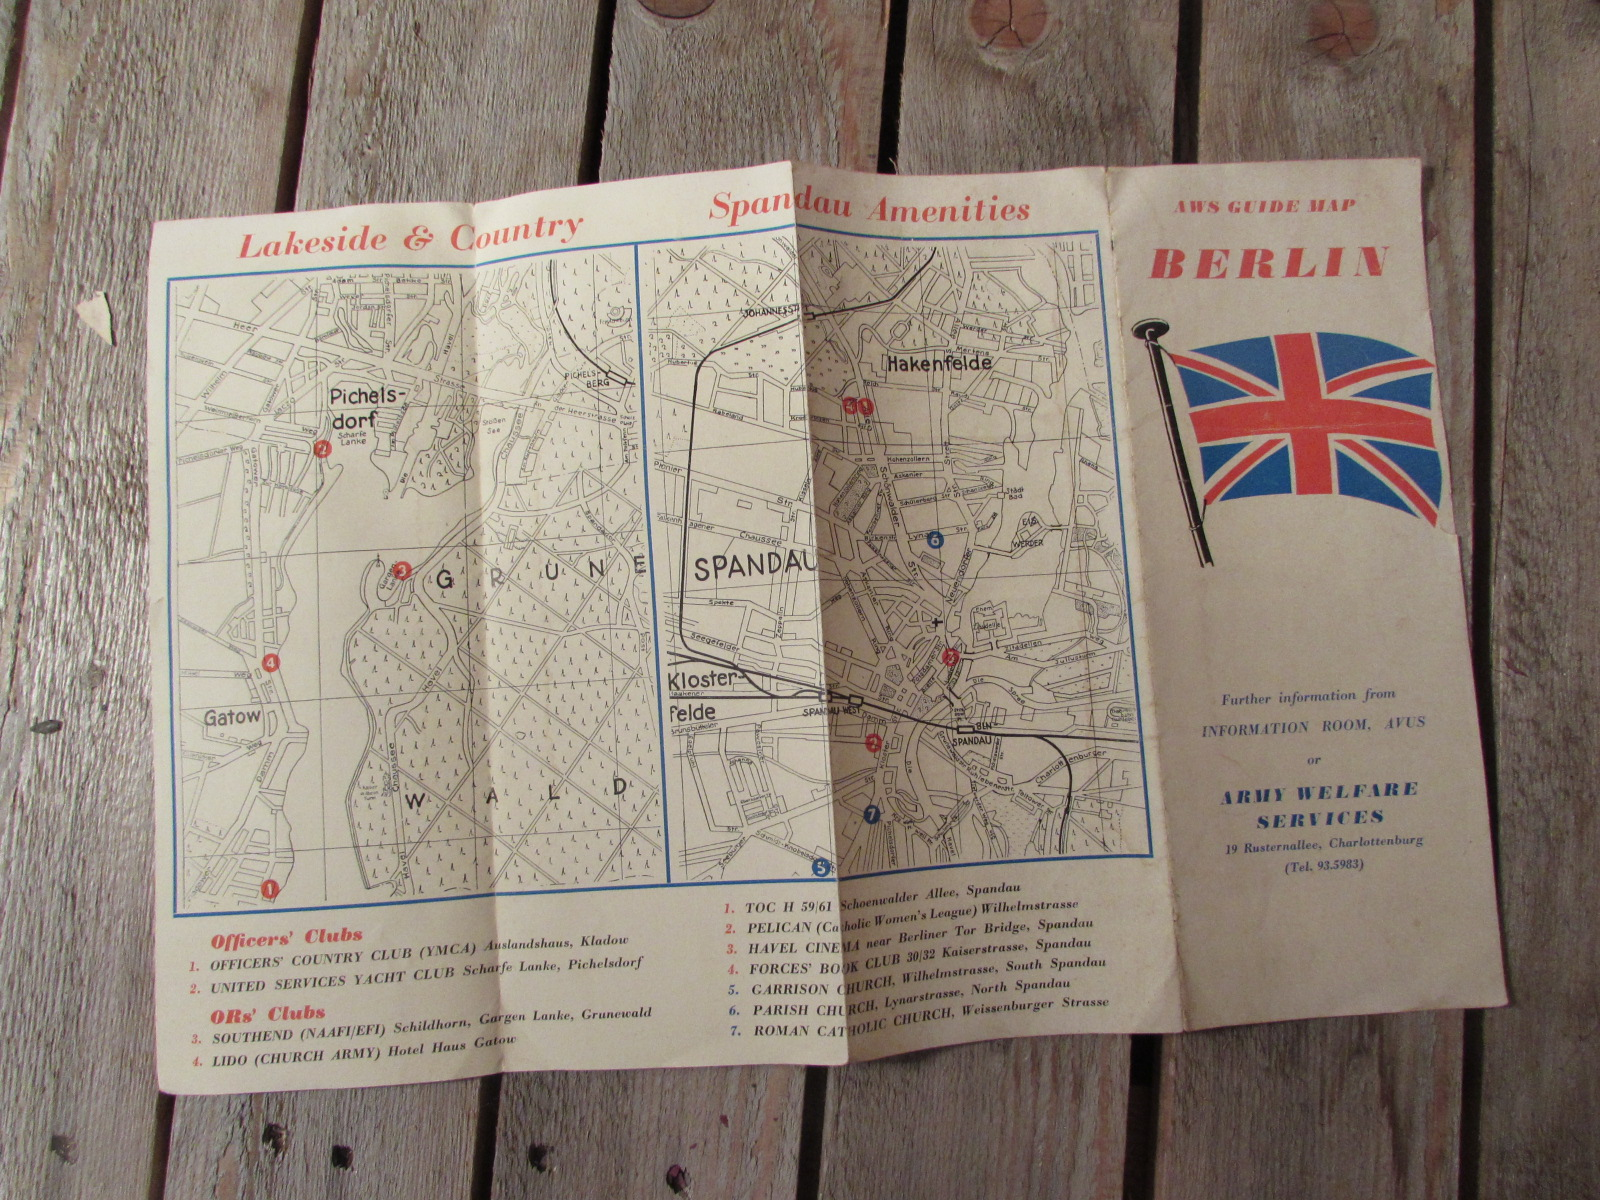 Army welfare services Berlin map (dated 1946)